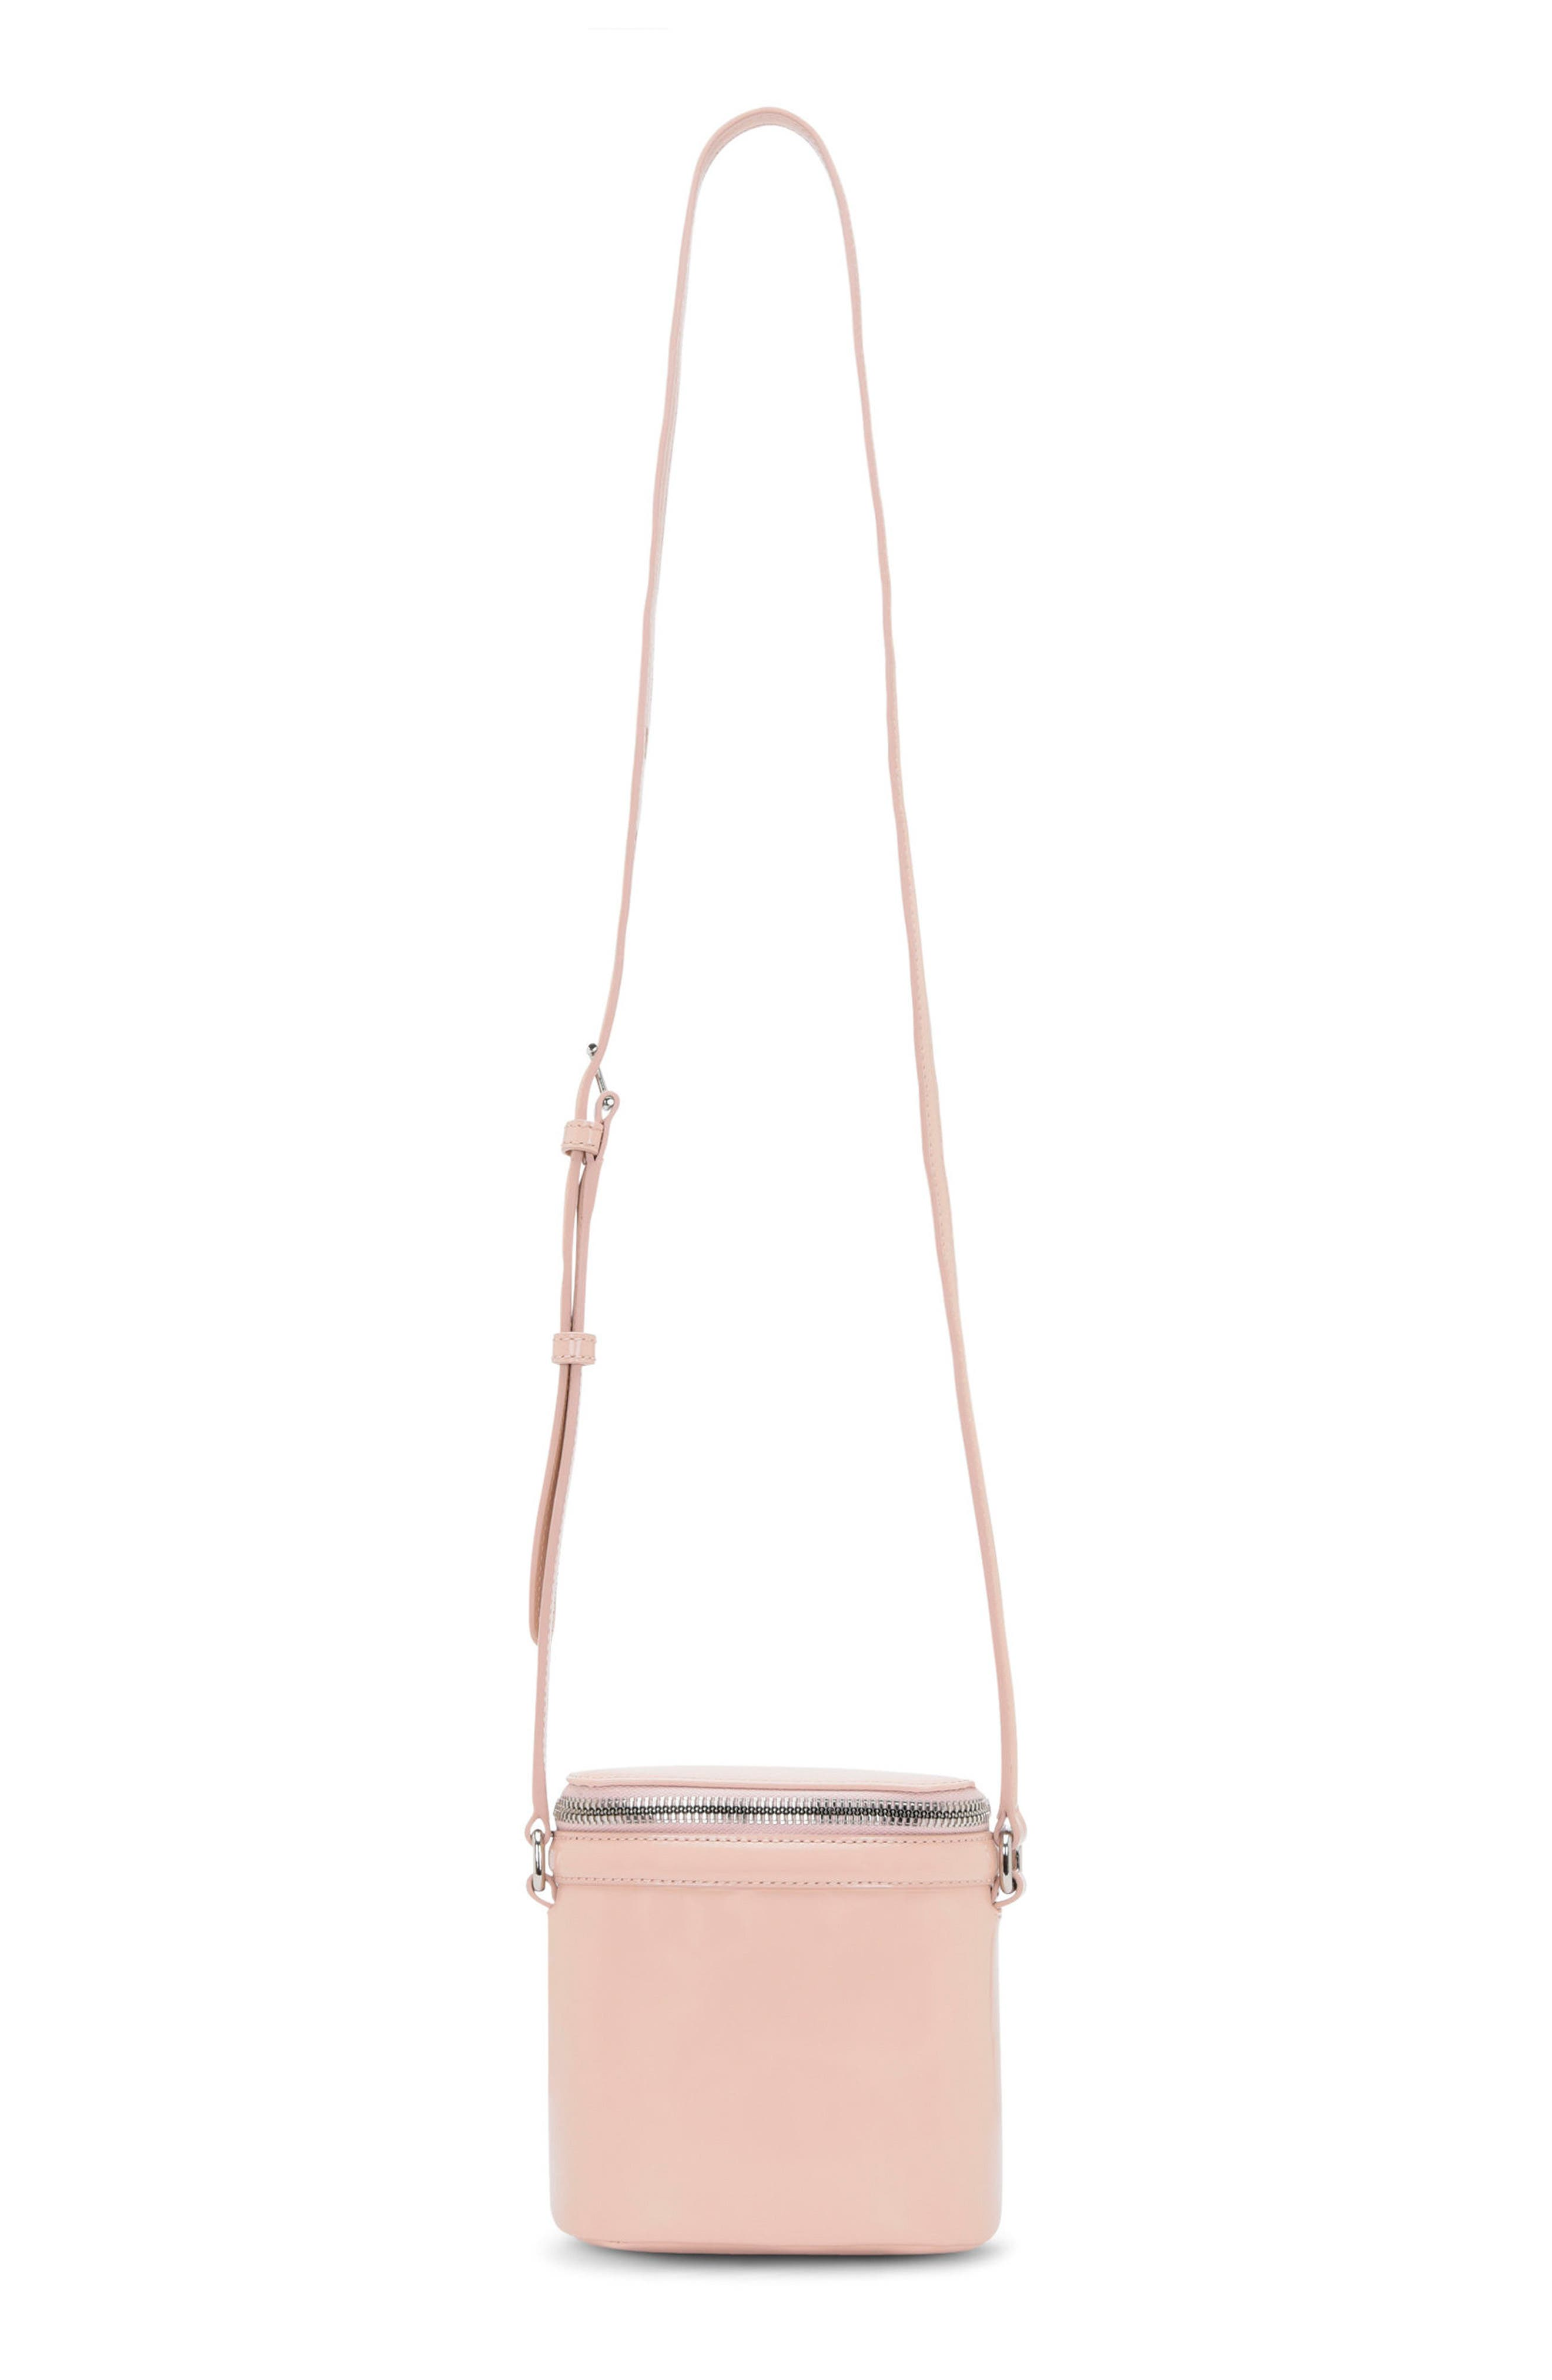 KARA Stowaway Leather Crossbody Bag